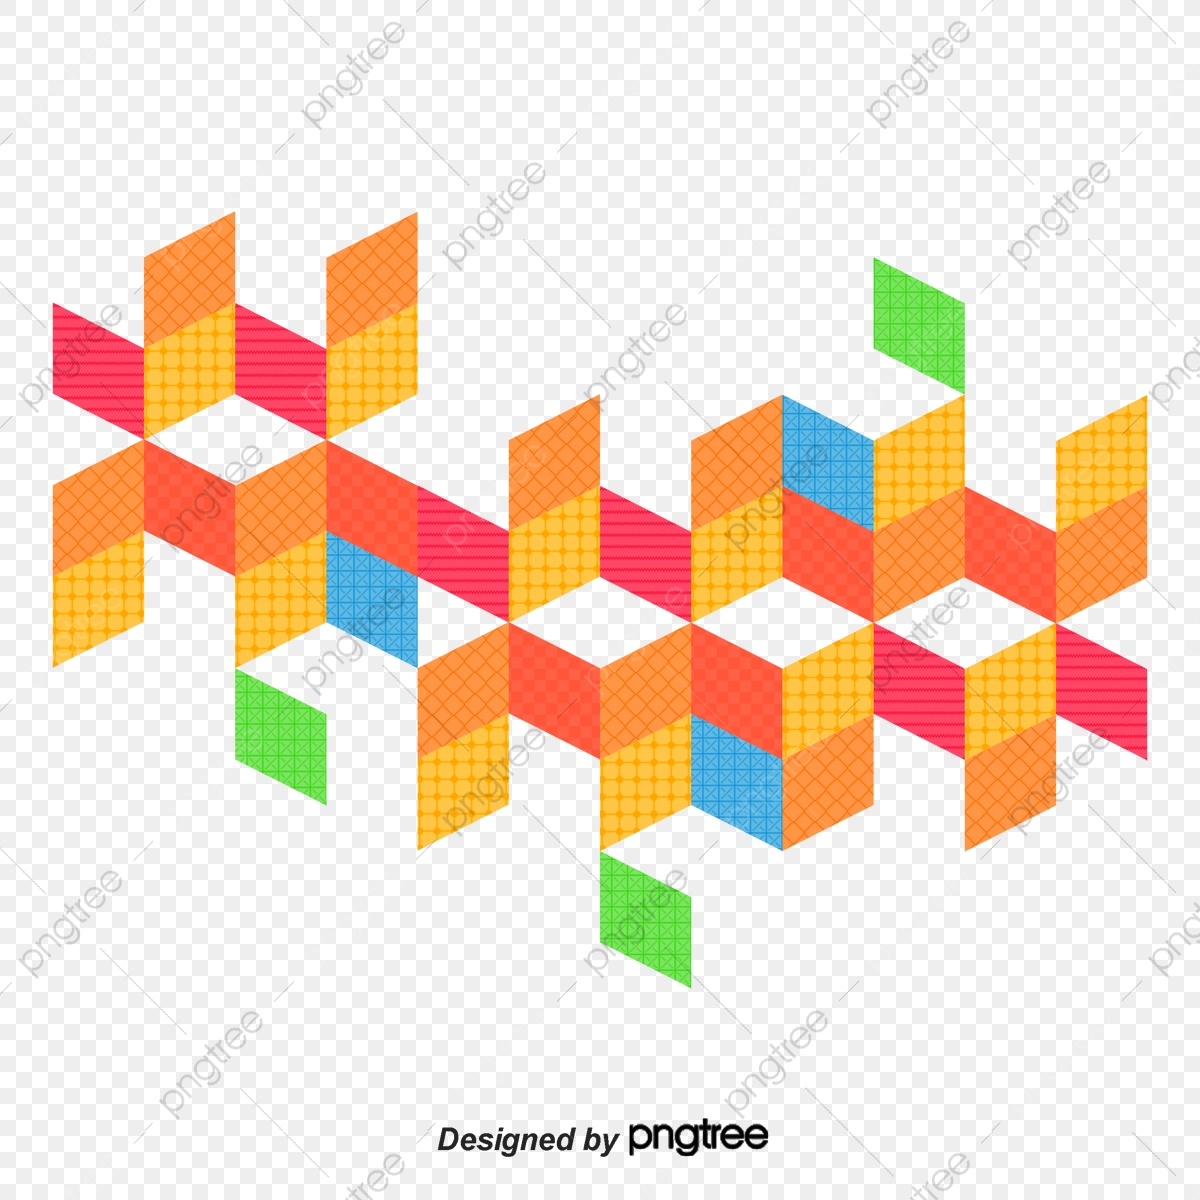 Geometric Vector Diagram, Hand, Geometric Figure, Mosaic PNG and.